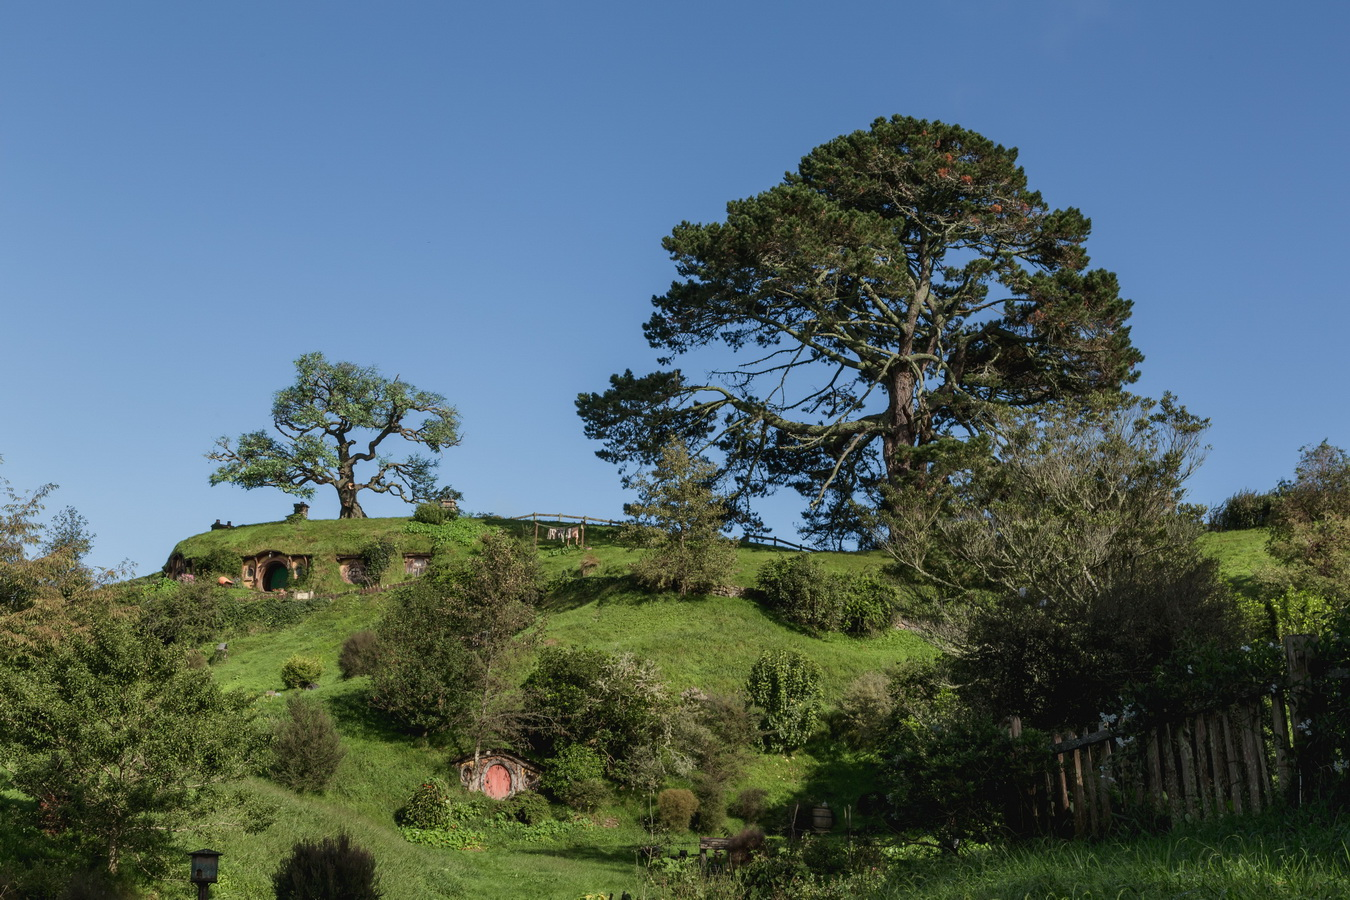 hobbit house,The Hobbiton, The Shire,Хоббитшир, Удел, Хоббитания, Заселье, Край,Matamata, North Island ,New Zealand